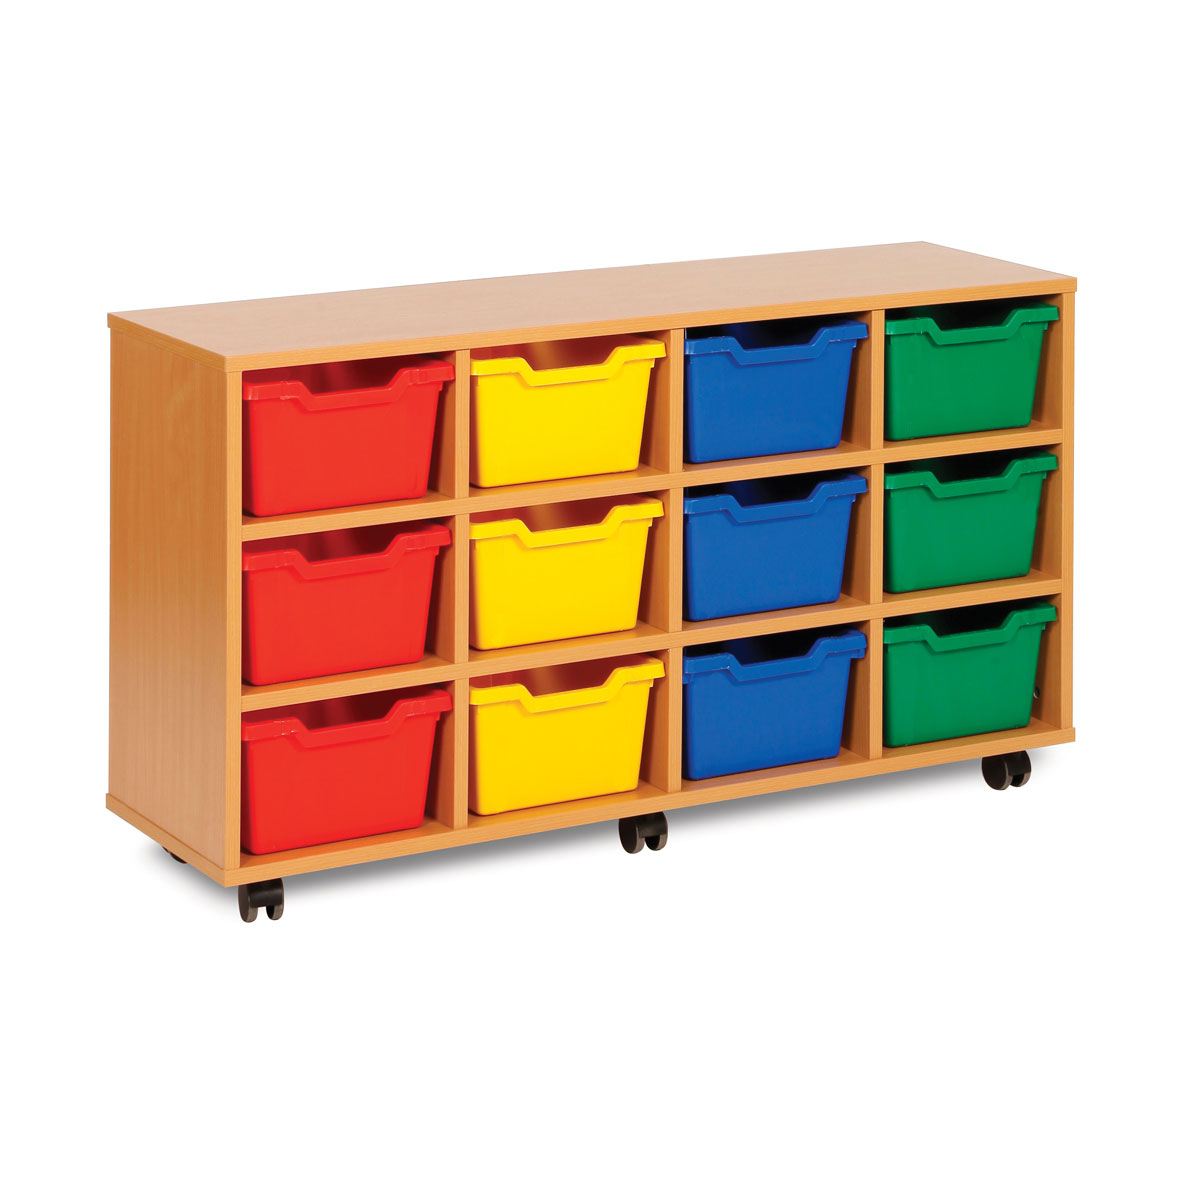 12 cubby tray storage unit meq8012 buy at primary ict for primary schools education. Black Bedroom Furniture Sets. Home Design Ideas